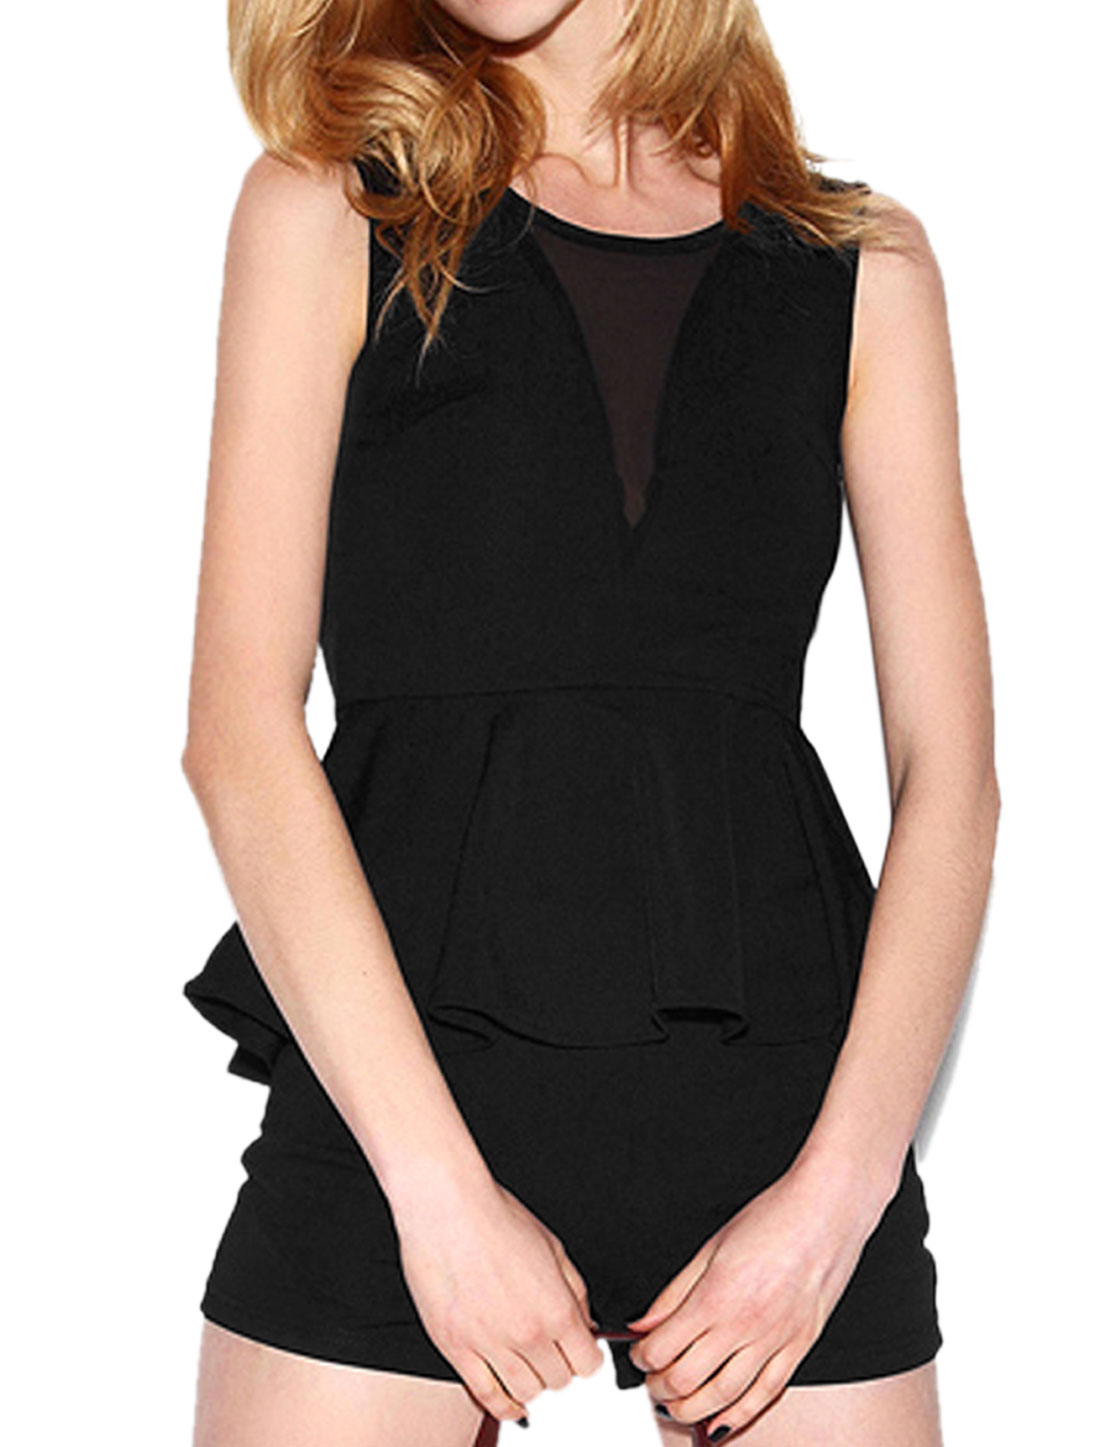 Lady Round Neck Peplum Tops w Mid Rise Pockets Front Shorts Sets Black M